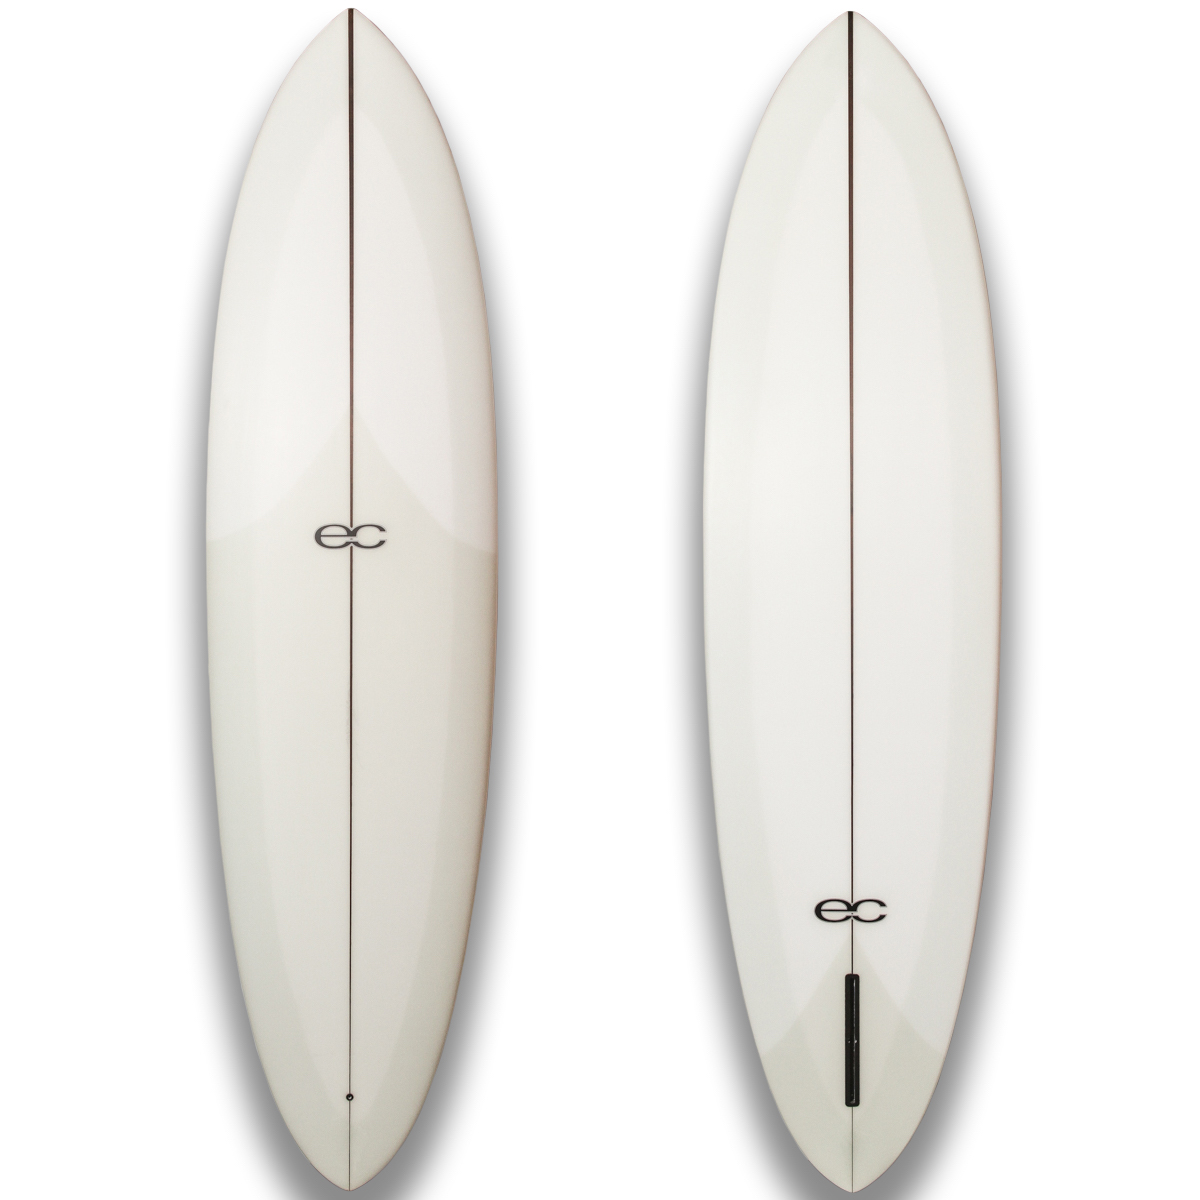 "【新品ストック】EC SURFBOARDS Mini Pelican 7'5"" x 22-1/4"" x 3"" No.20190324_2"